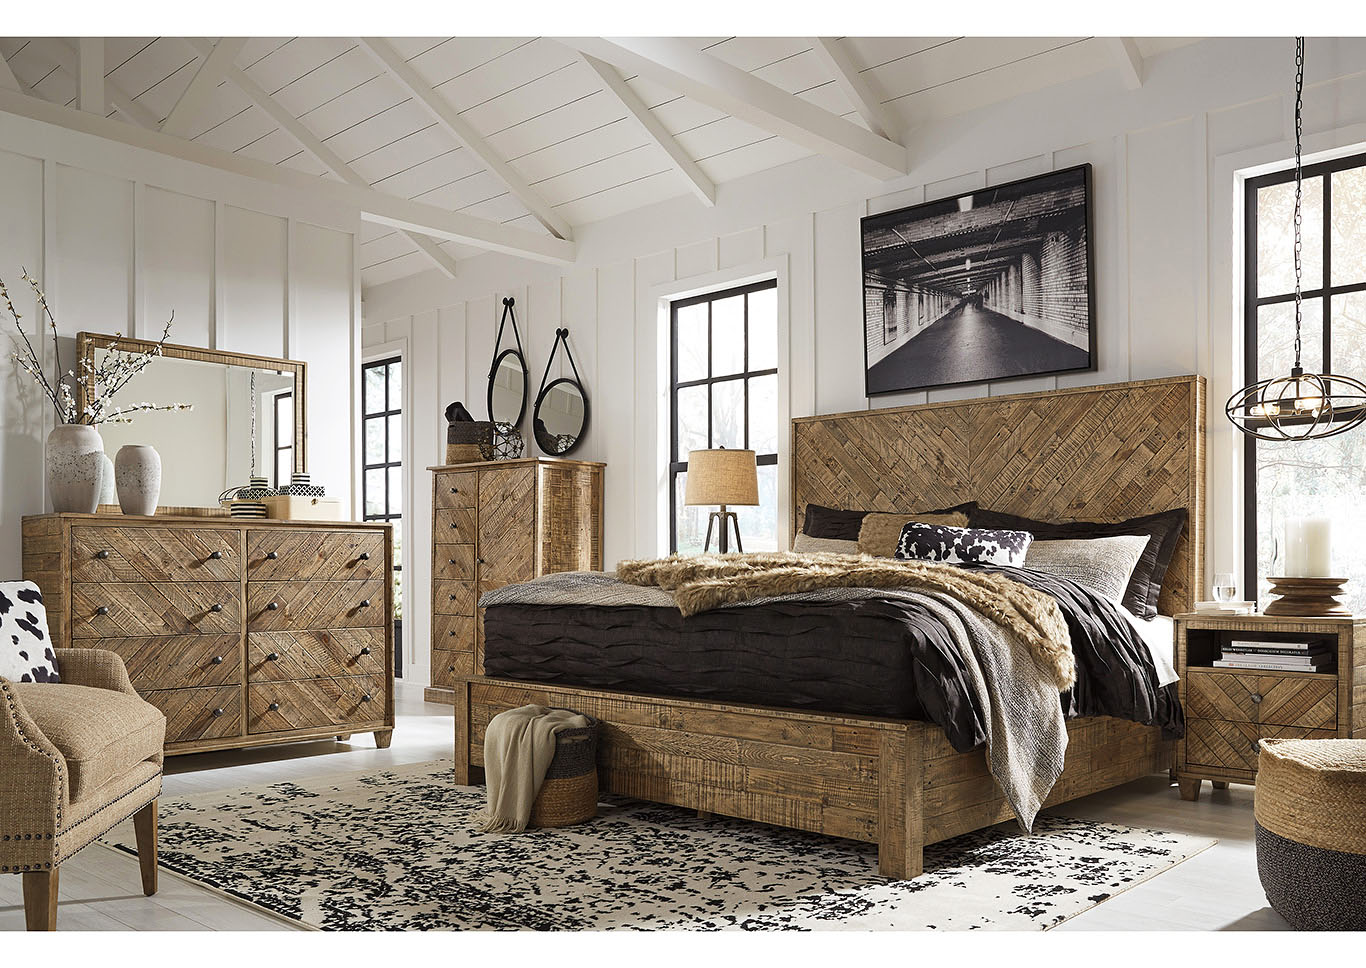 Grindleburg Light Brown Queen Platform Bed w/Dresser and Mirror,Signature Design By Ashley